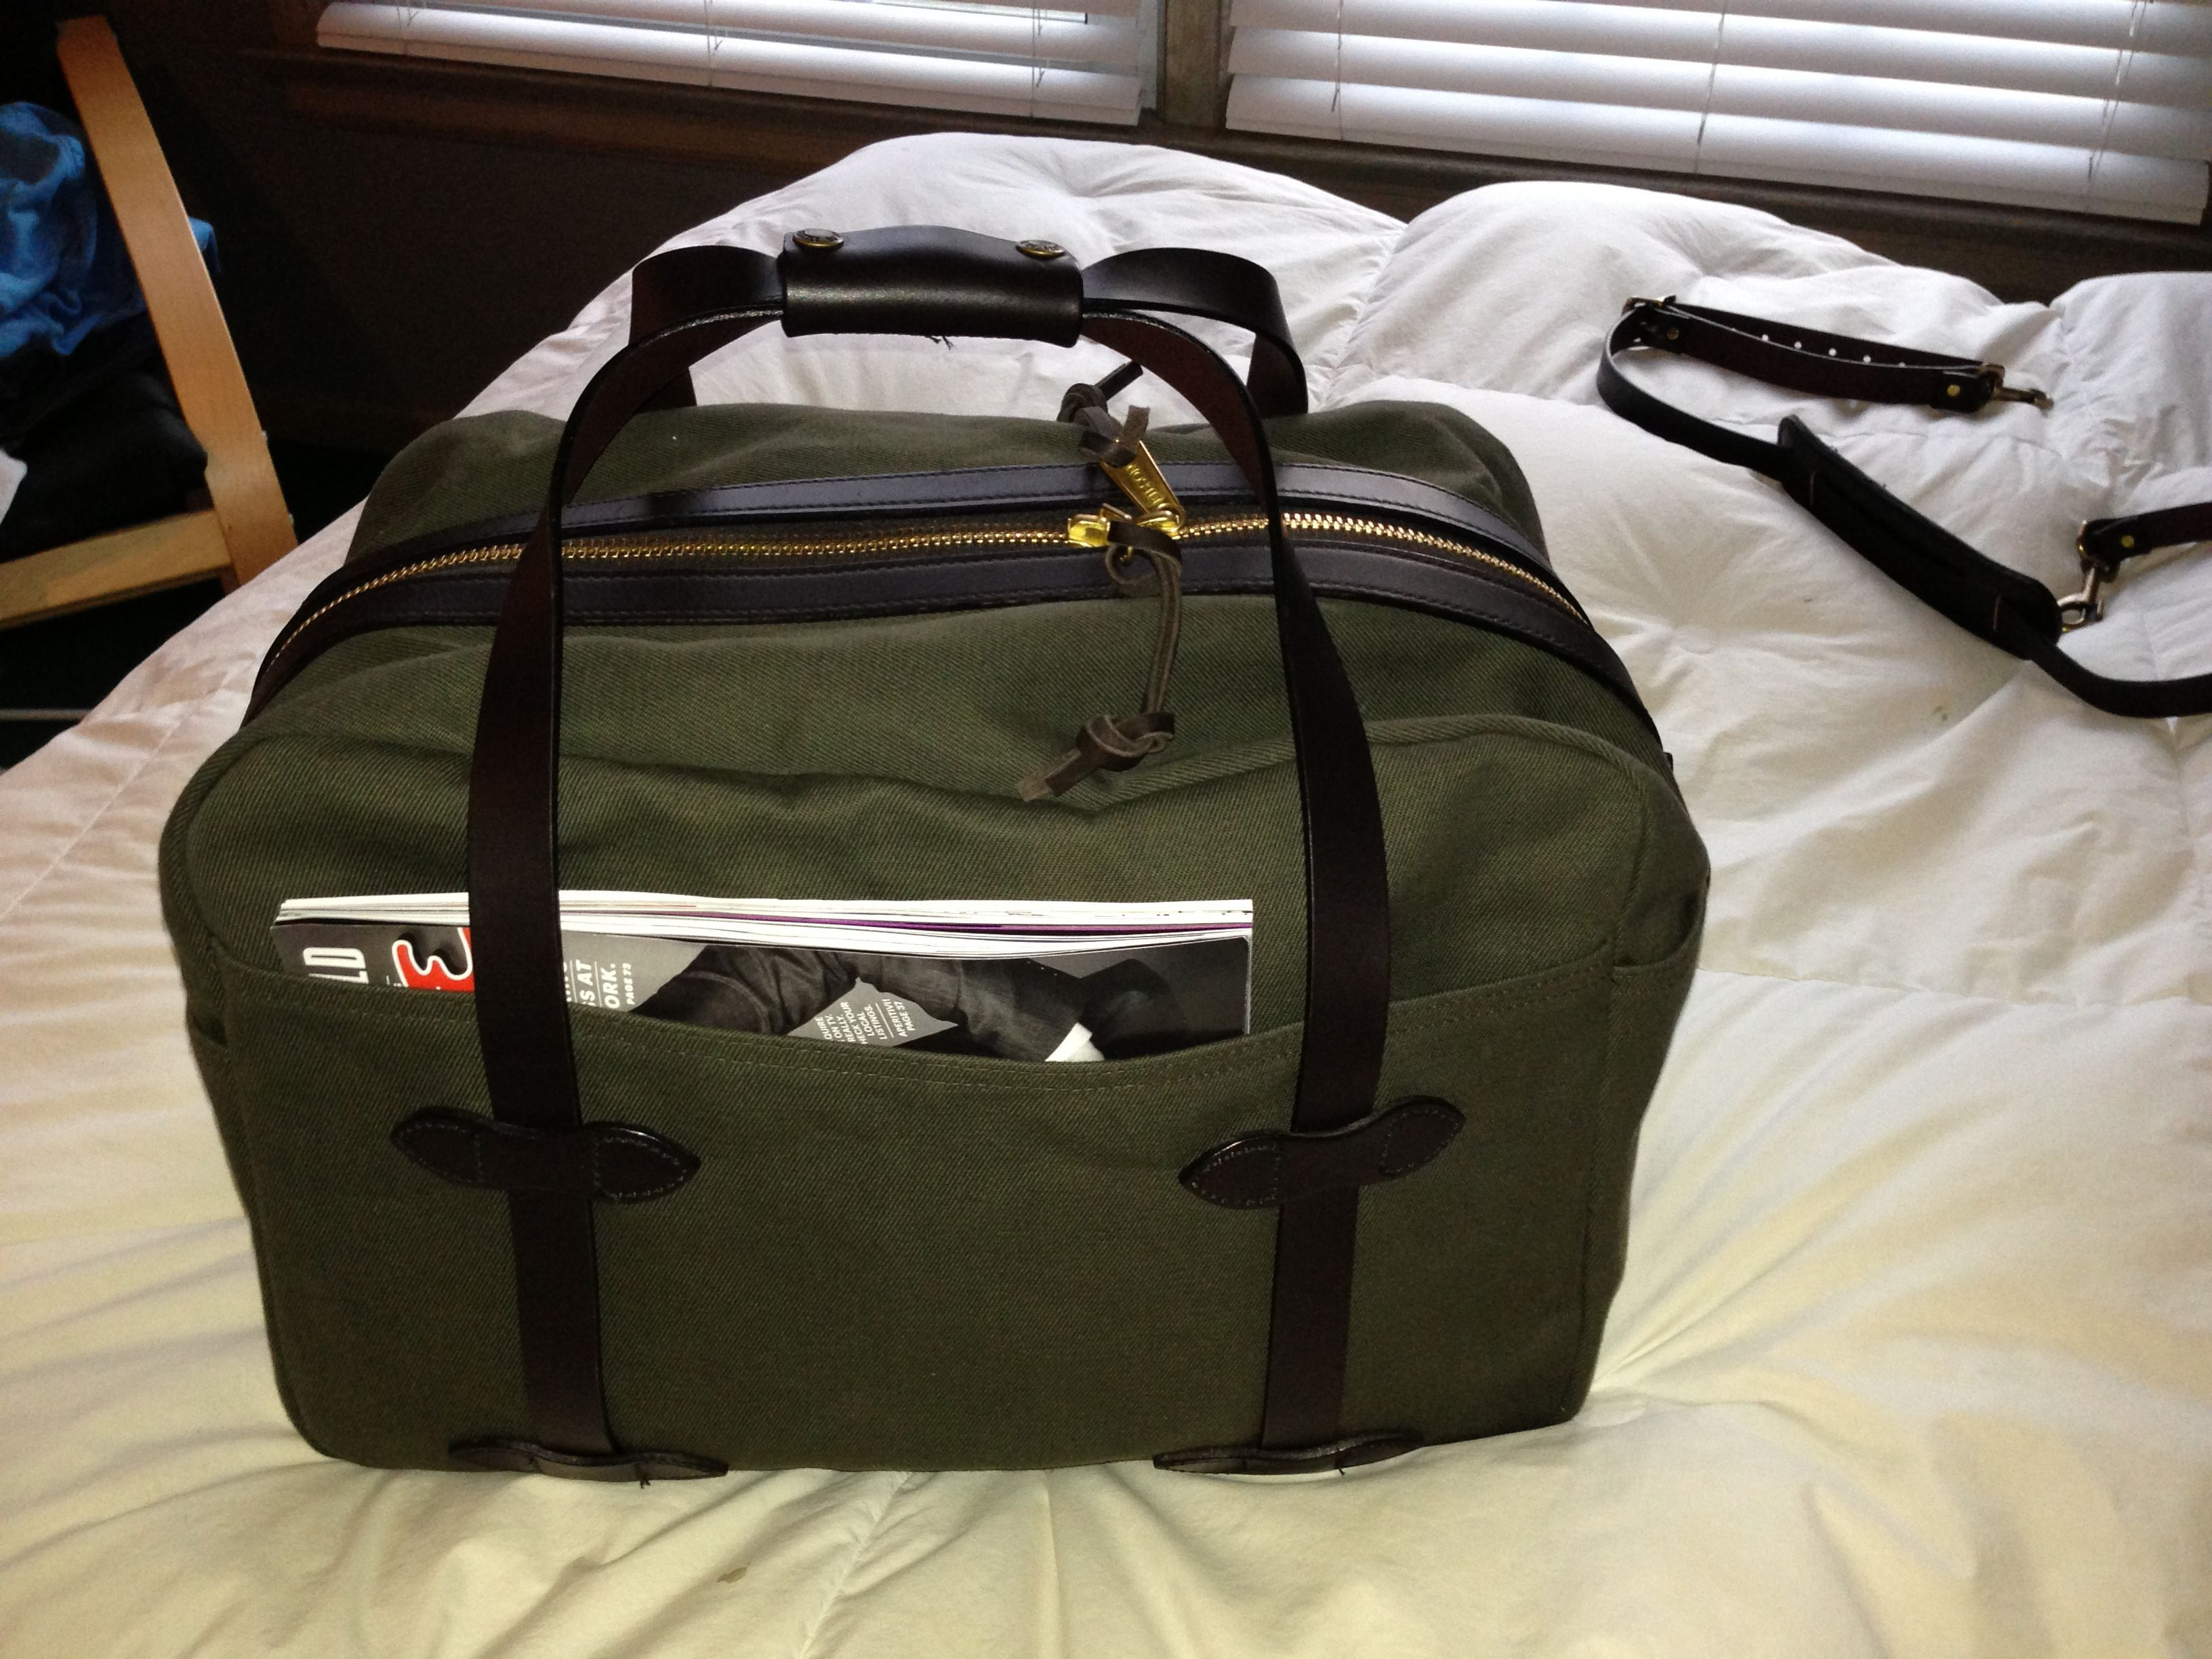 Filson Bag Thread With Pictures